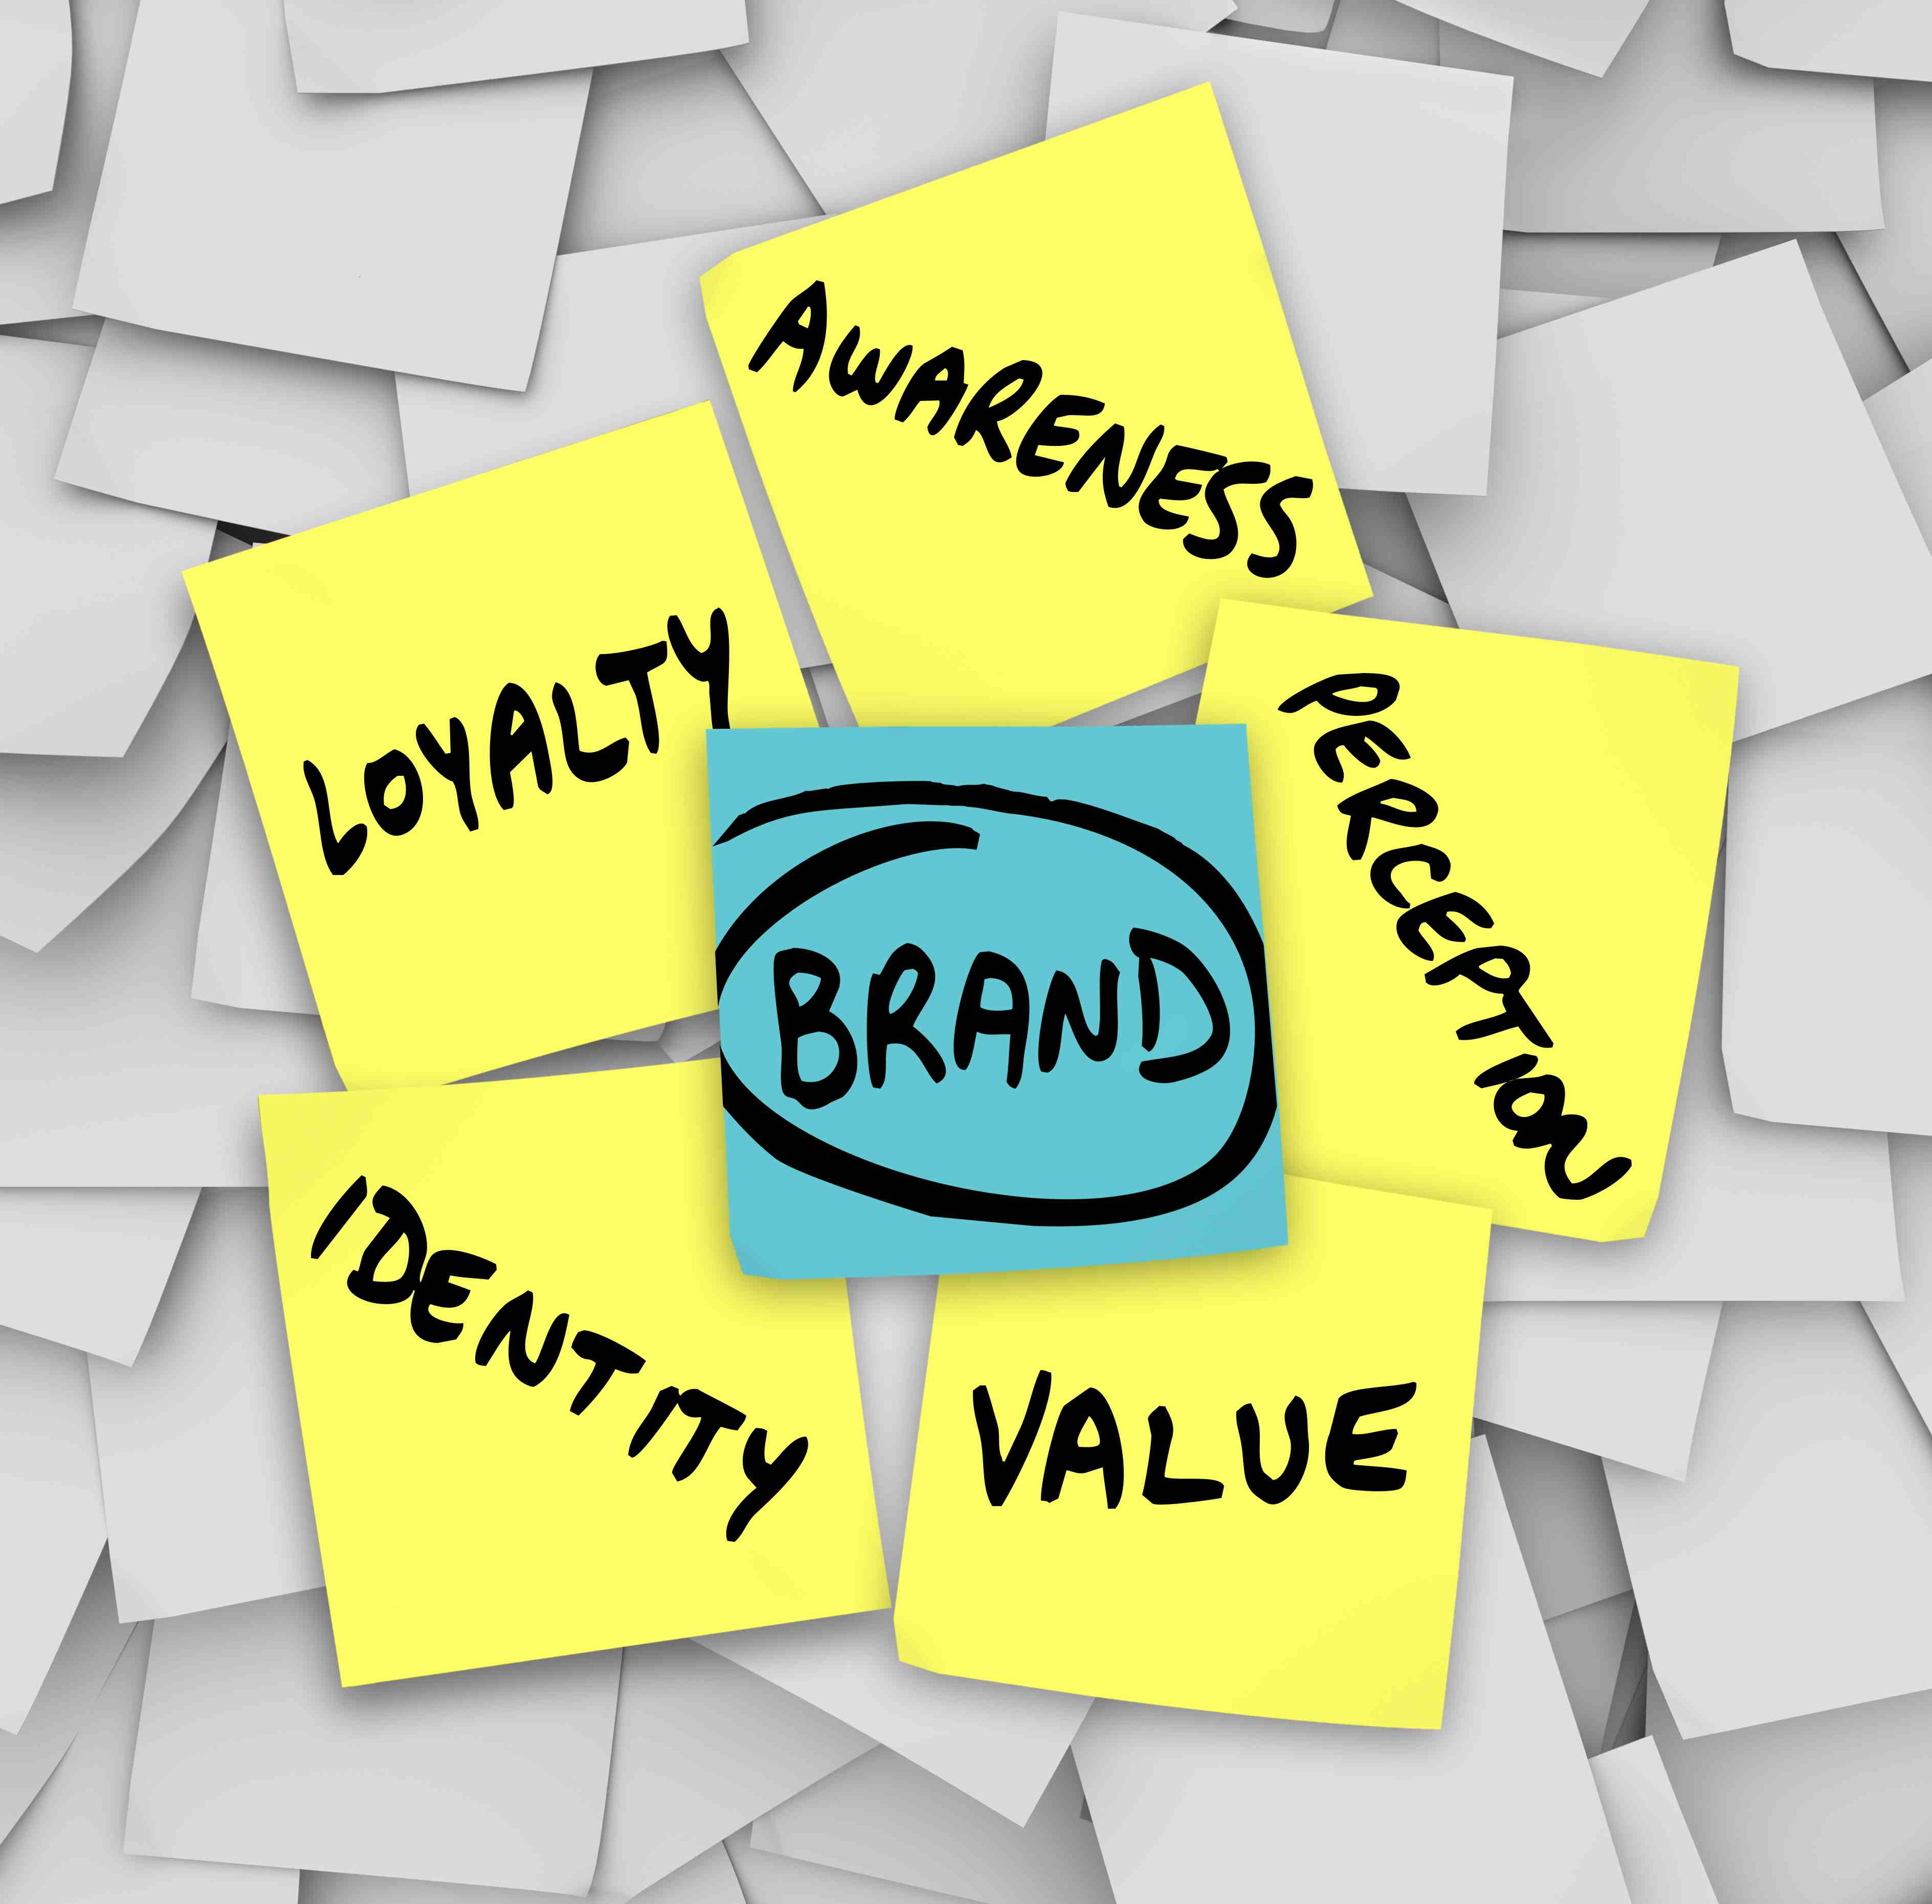 CareerSupport365 | User Generated Content Sites. Employer Brand and Reputation Are at Risk.